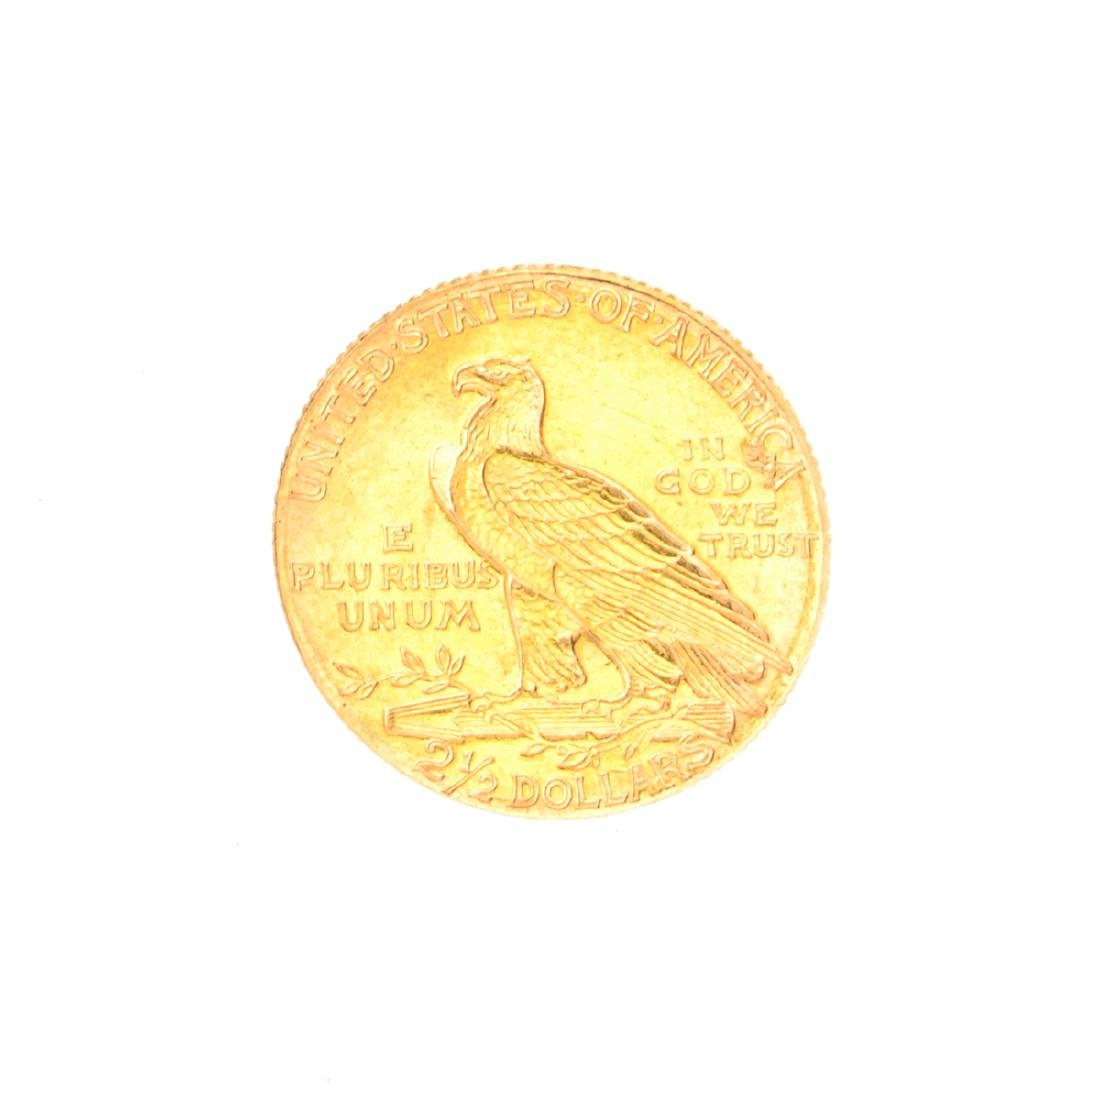 Very Rare 1913 $2.50 U.S. Indian Head Gold Coin Great - 2